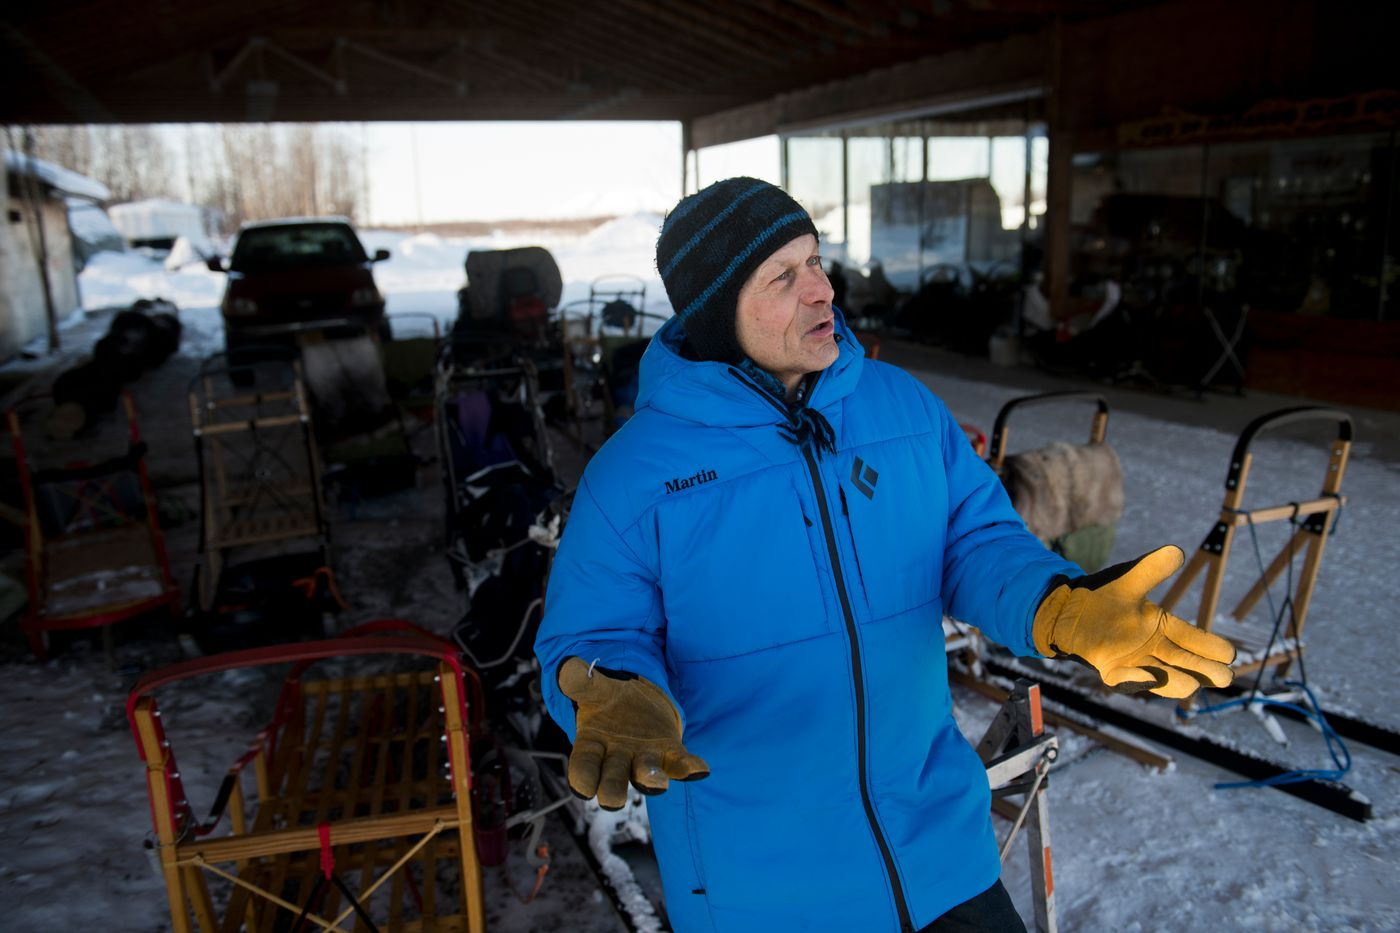 Martin Buser has 36 Iditarod finishes, has placed in the top ten 19 times and has won the race 4 times since 1980. Photographed on February 25, 2020. (Marc Lester / ADN)